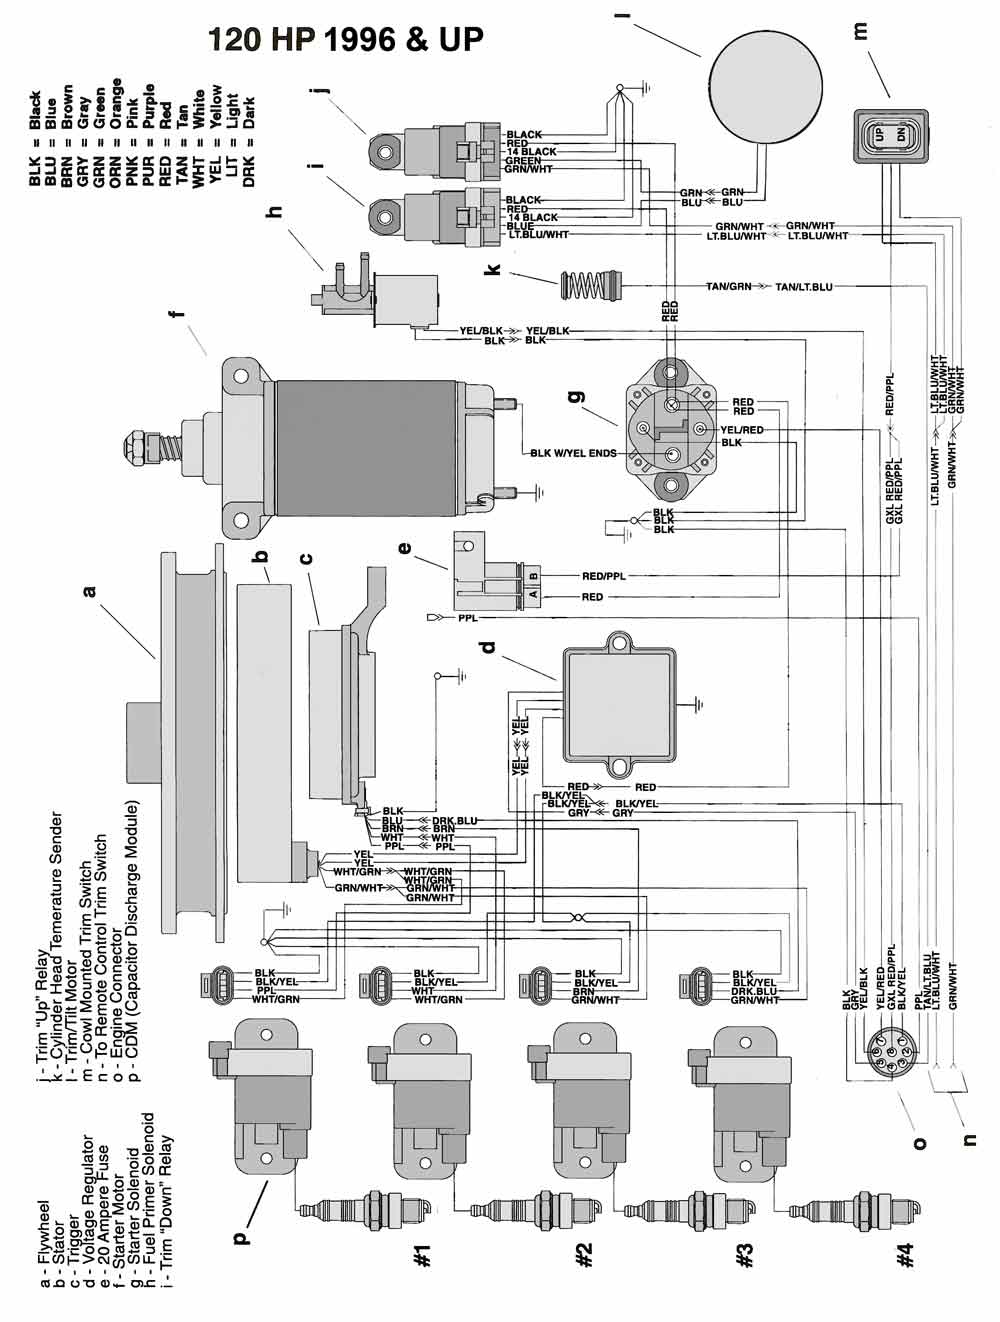 1998 Mercury Outboard Wiring Diagram Free Picture Electrical Tracer Johnson Motor Automotivegarage Org Impeller